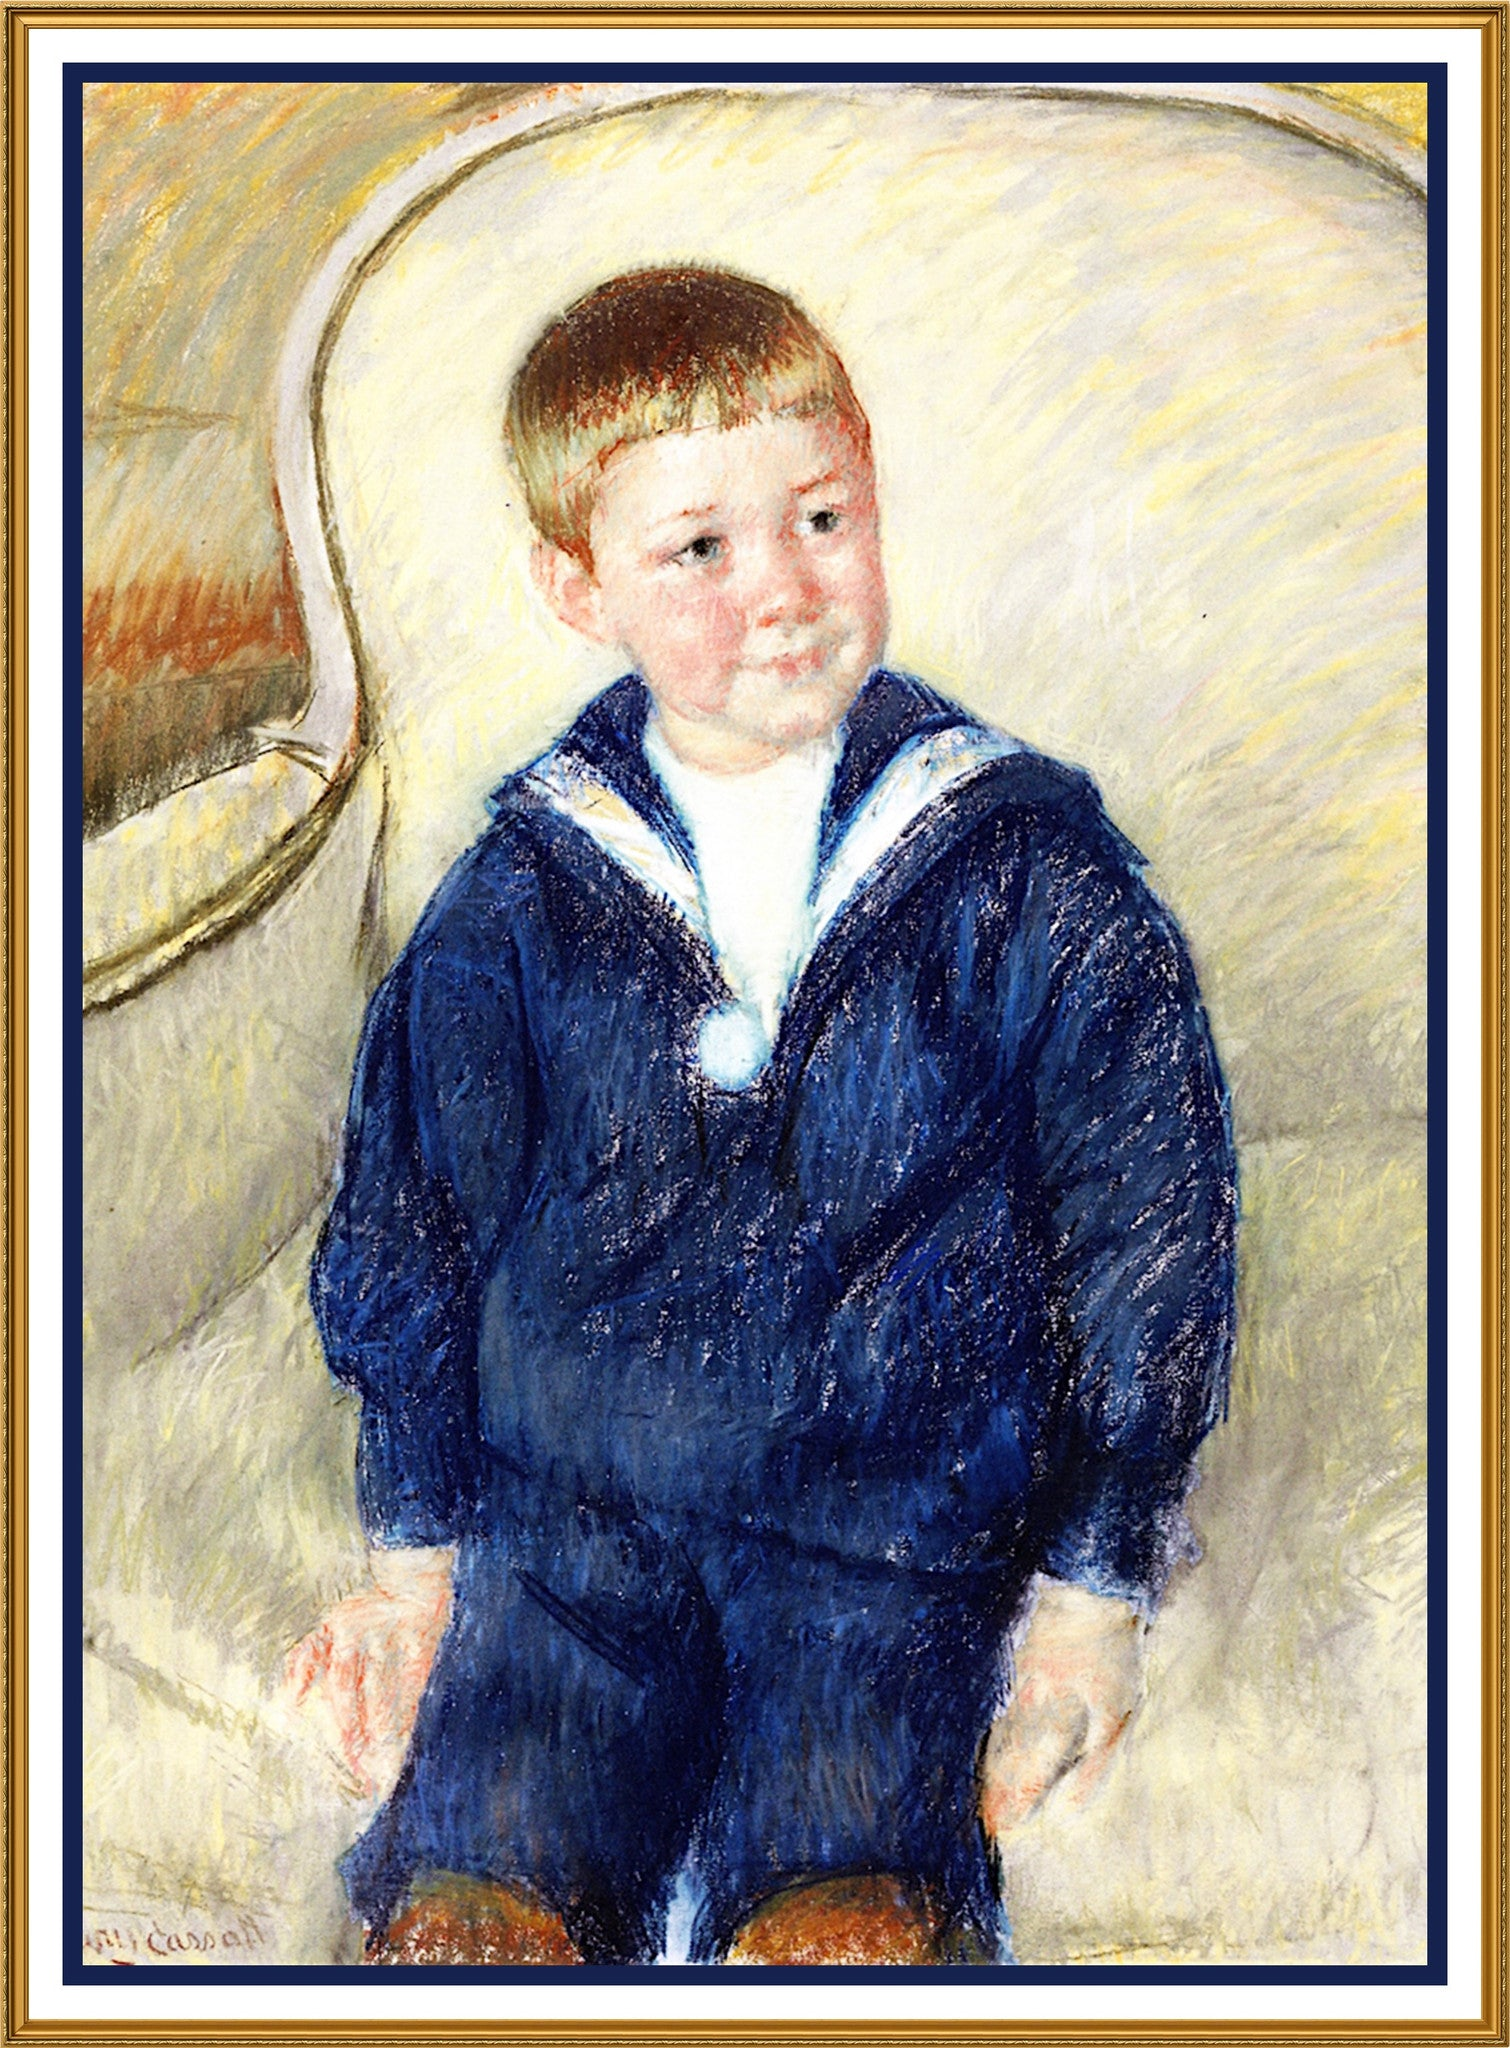 Portrait Of The Young Master By American Impressionist Artist Mary Cassatt Counted Cross Stitch Or Needlepoint Pattern